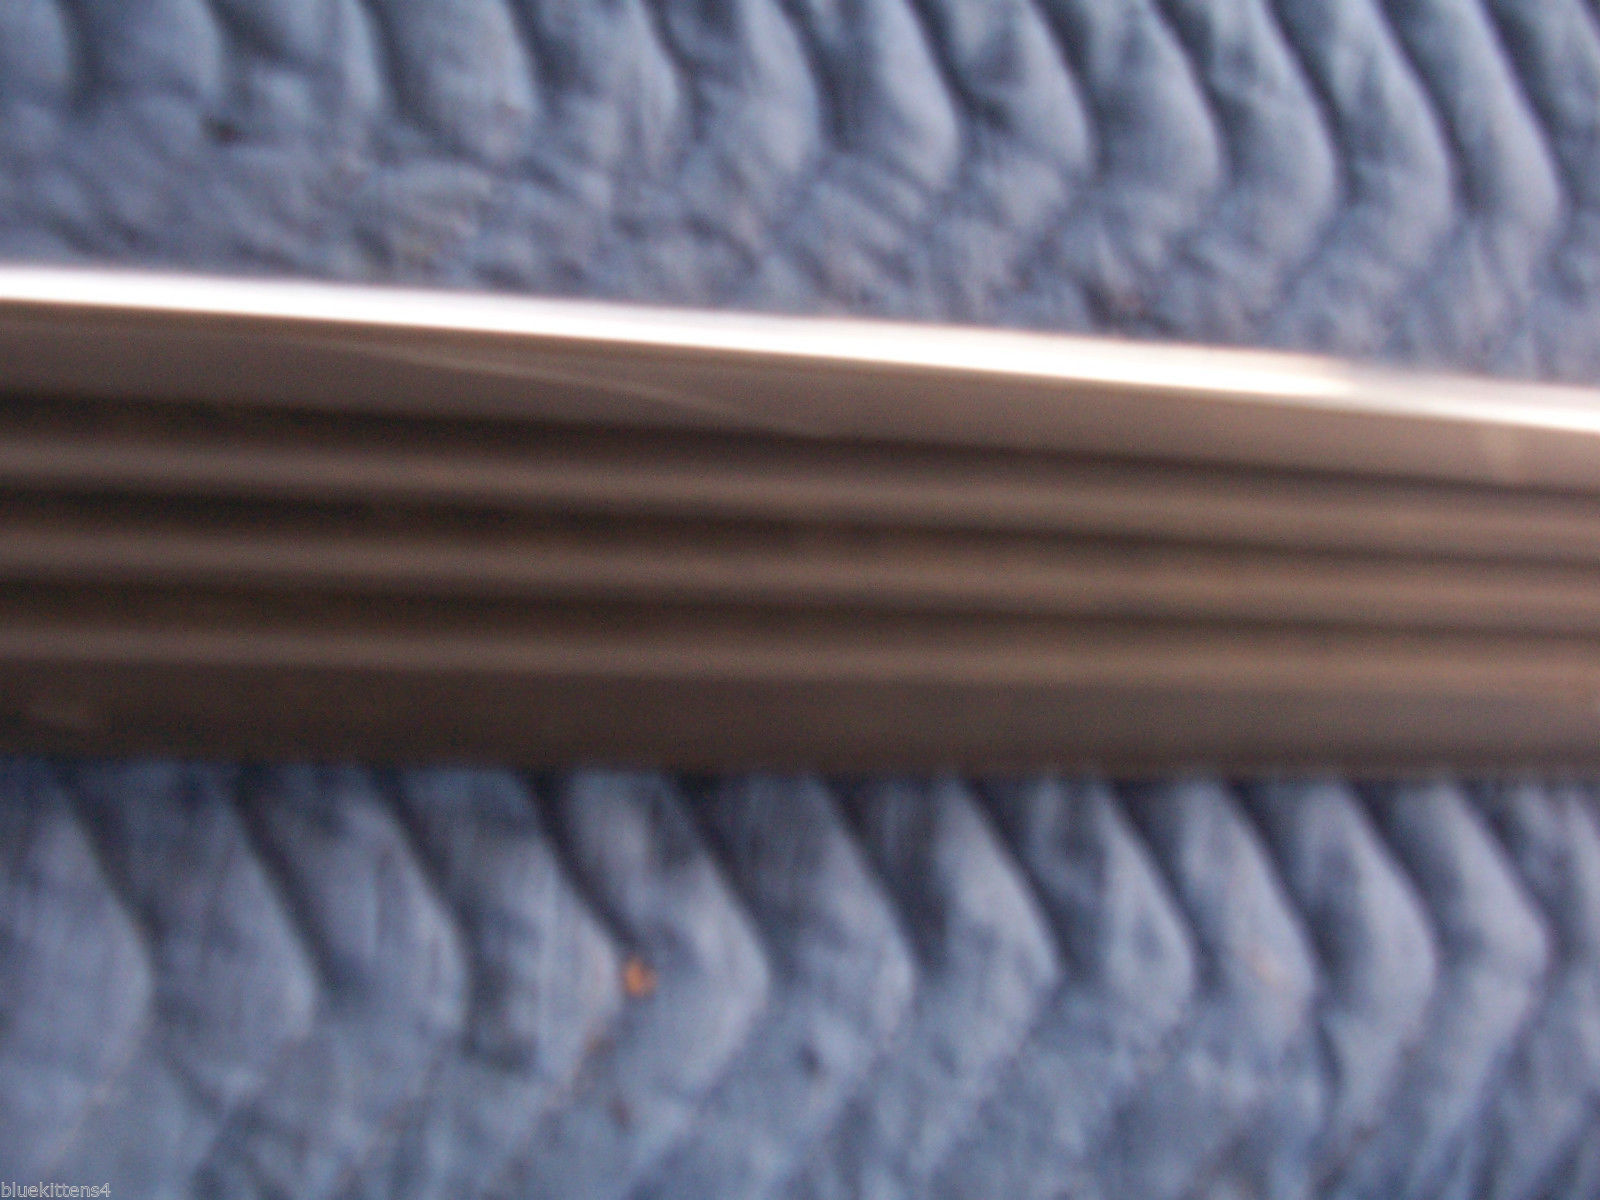 1988 LINCOLN MARK VII 7 RIGHT FENDER FRONT TRIM MOLDING OEM USED 1990 1992 1984